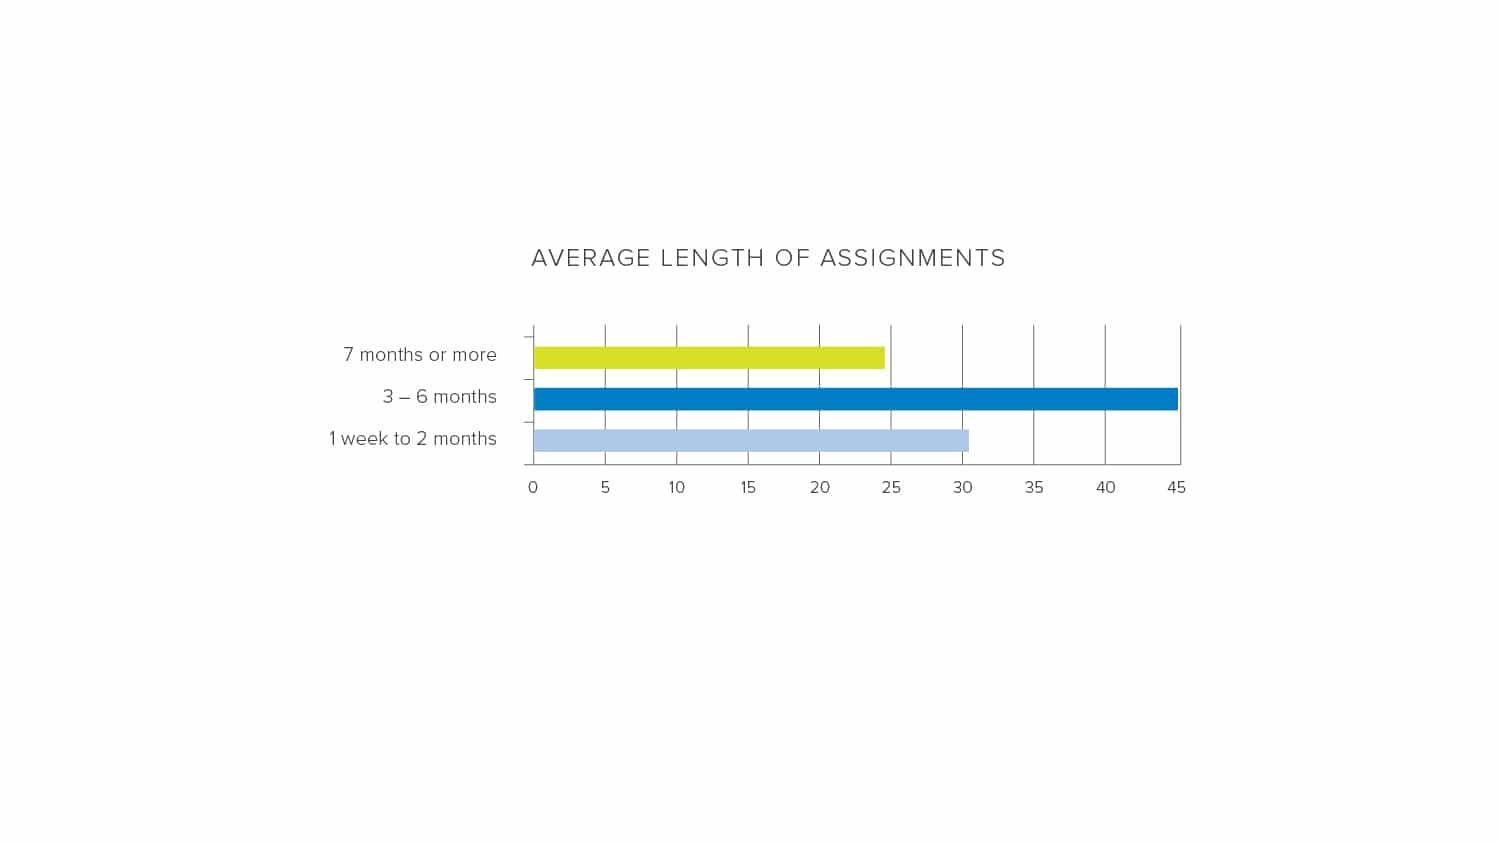 Average length of assignments